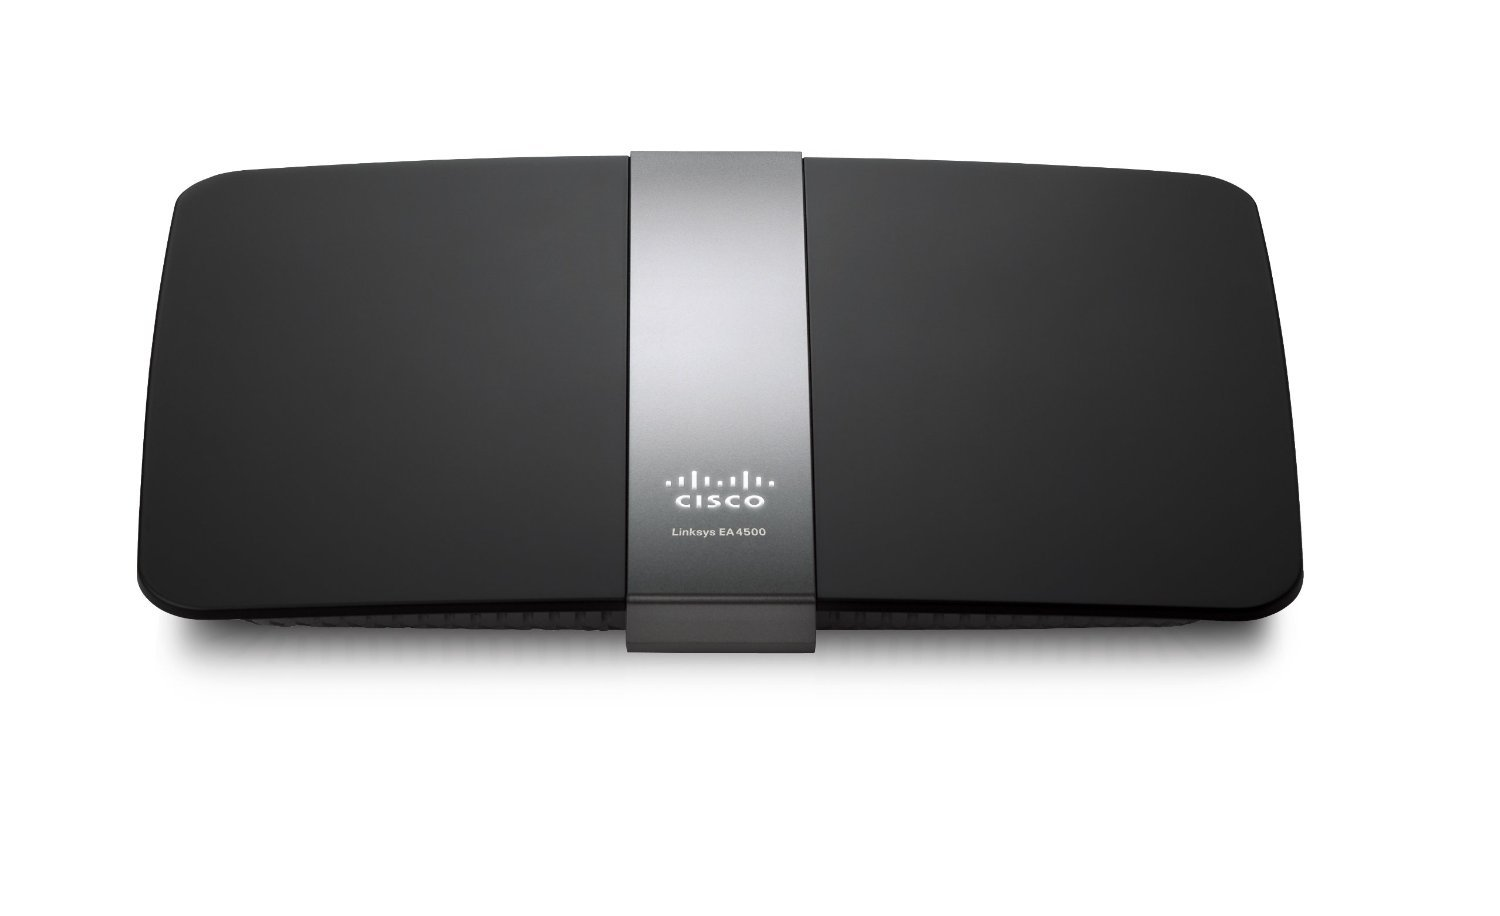 Linksys EA4500 App-Enabled N900 Dual-Band Wireless-N Router with Gigabit and USB (Certified Refurbished) by Linksys